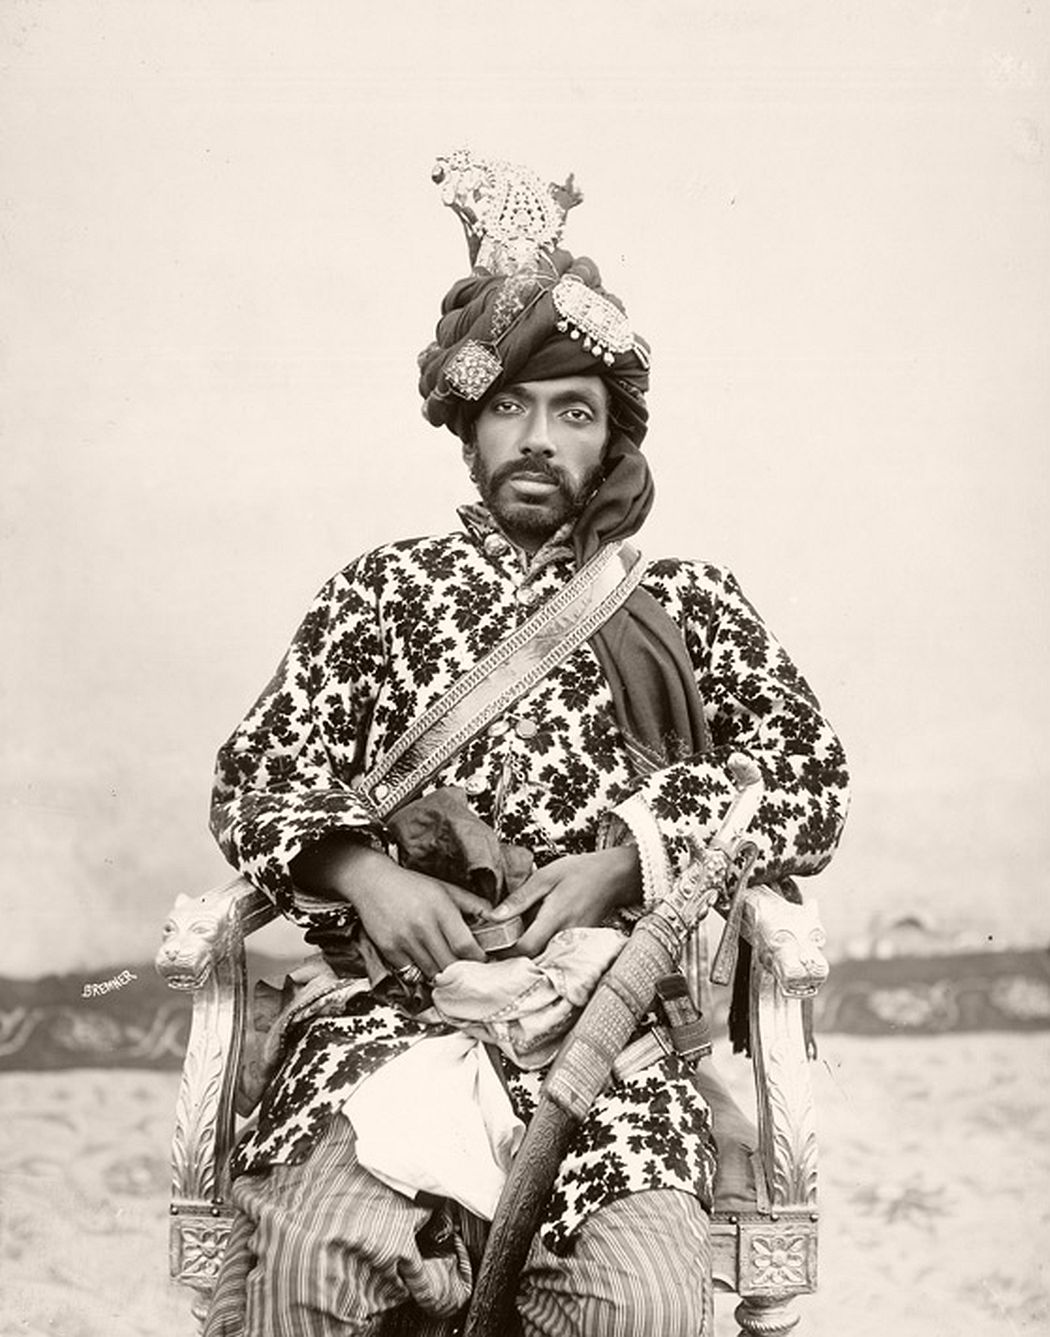 Sir Mir Mohammad Khan, Khan (ruling chief) of Kalat (in Baluchistan), c. 1894